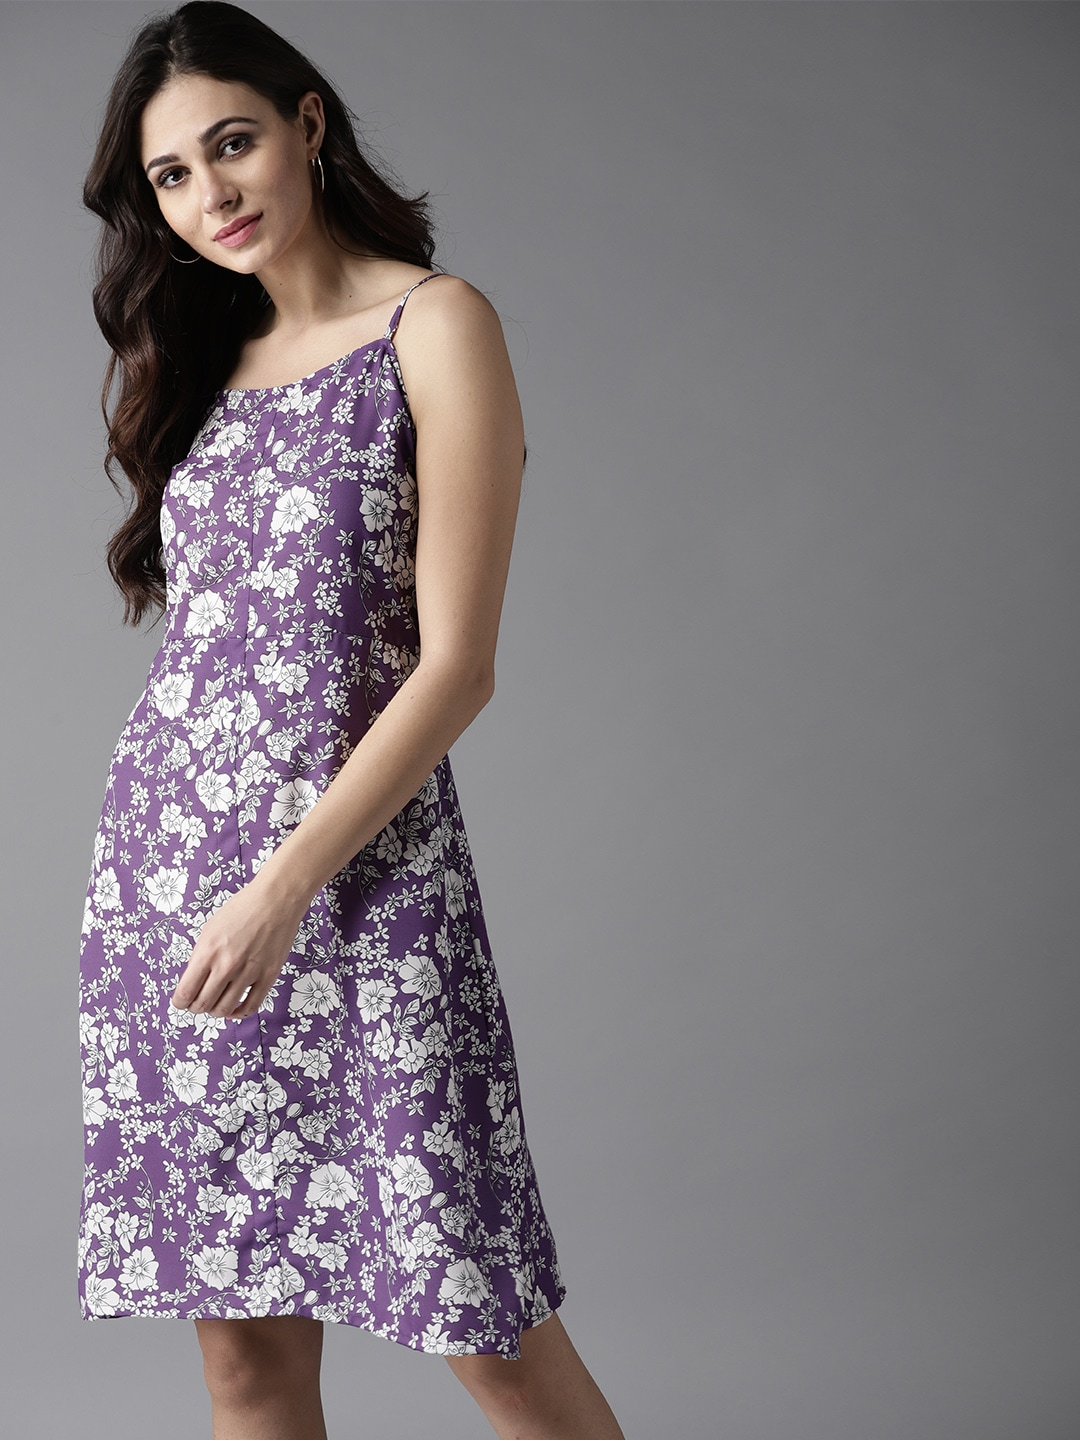 79d742f03d1d Purple Dresses - Buy Purple Dresses online in India